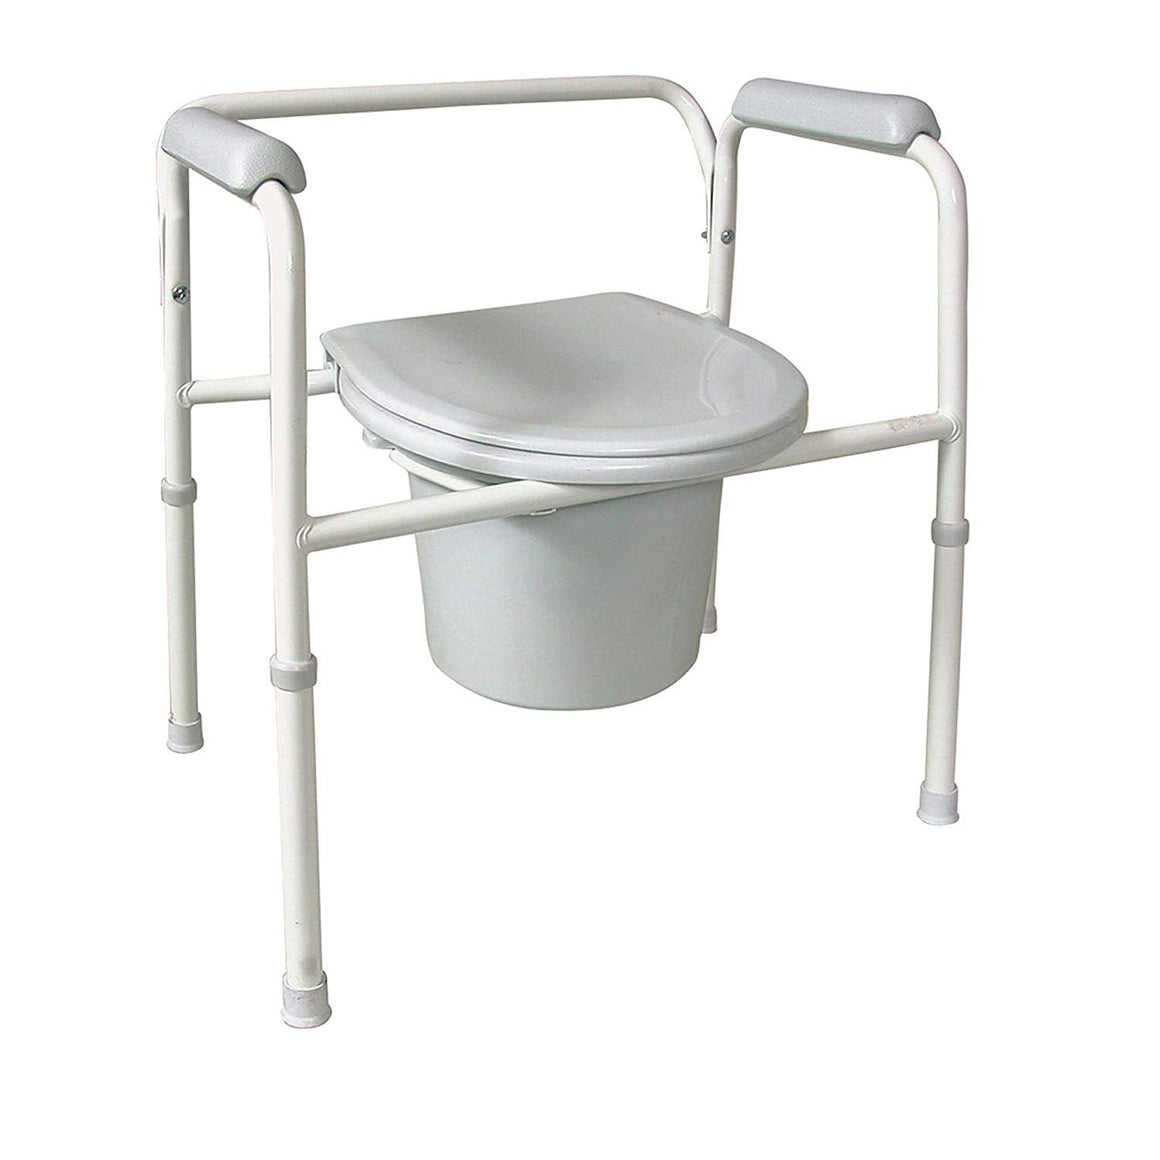 DMI Deluxe Steel Bedside Commode with Contoured Armrests, Removable Backrest and Lid, Adjustable Height, No-Tool Assembly